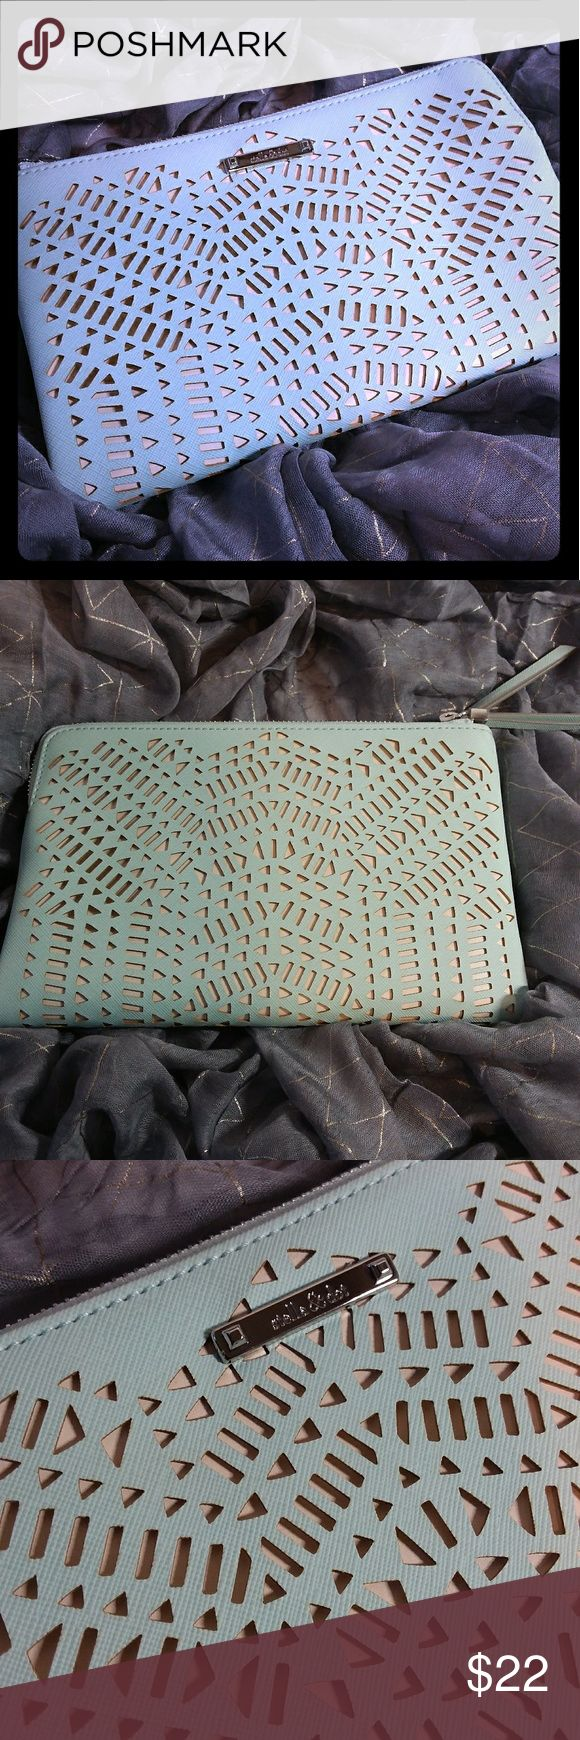 "Stella & Dot Double Clutch Mint Perf Gorgeous mint green Stella & Dot. New without tags.   Length 8 7/8""  width 1 1/4"" height 5 5/8"" Stella & Dot Bags Clutches & Wristlets"